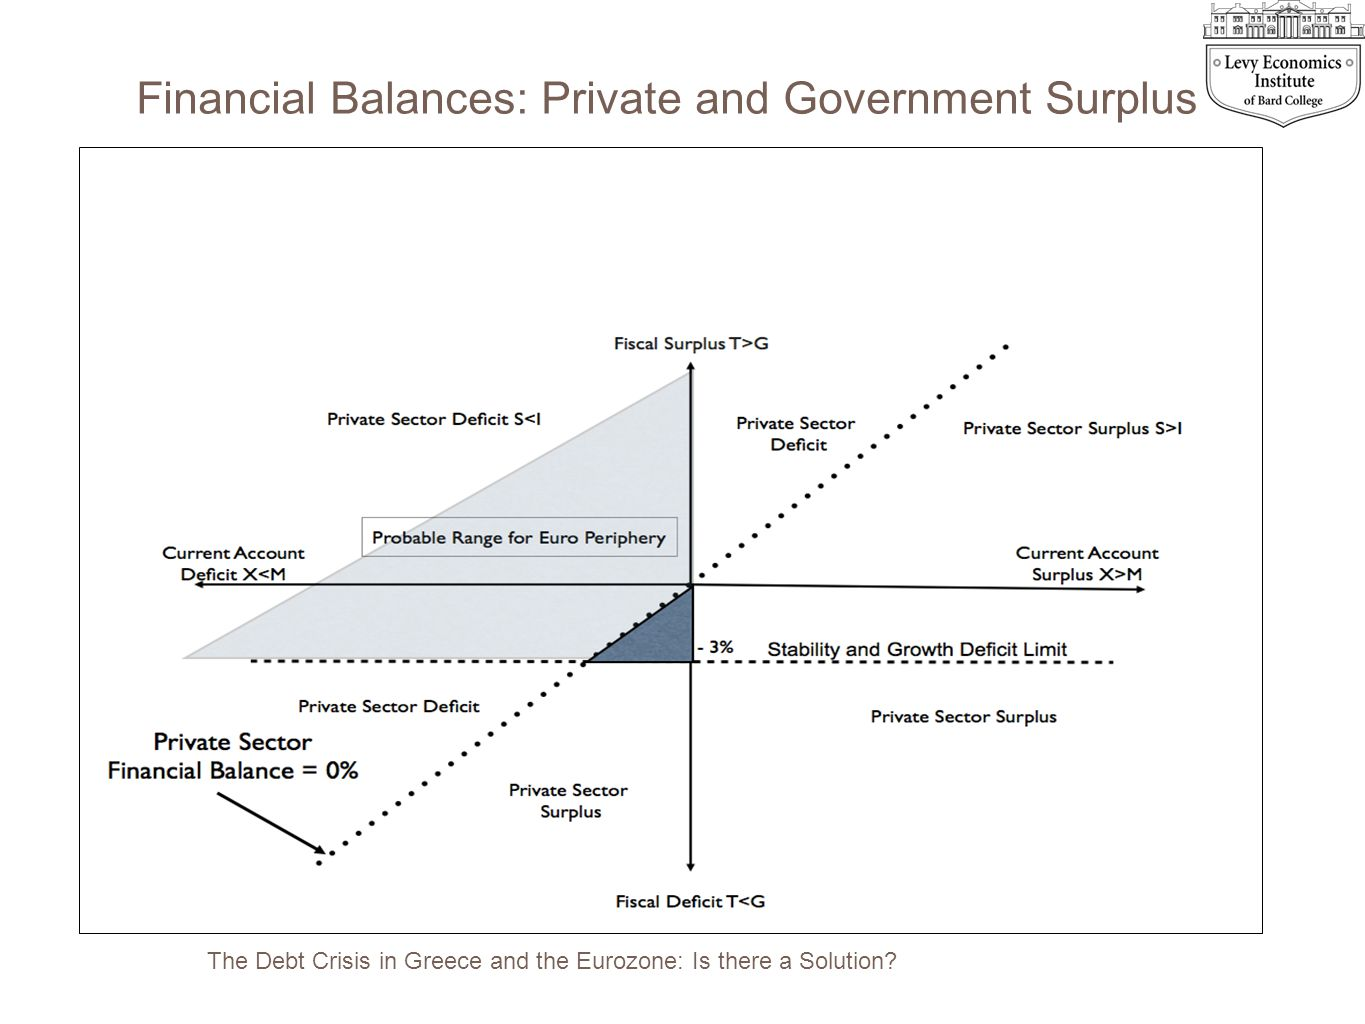 The Debt Crisis in Greece and the Eurozone: Is there a Solution? Financial Balances: Private and Government Surplus